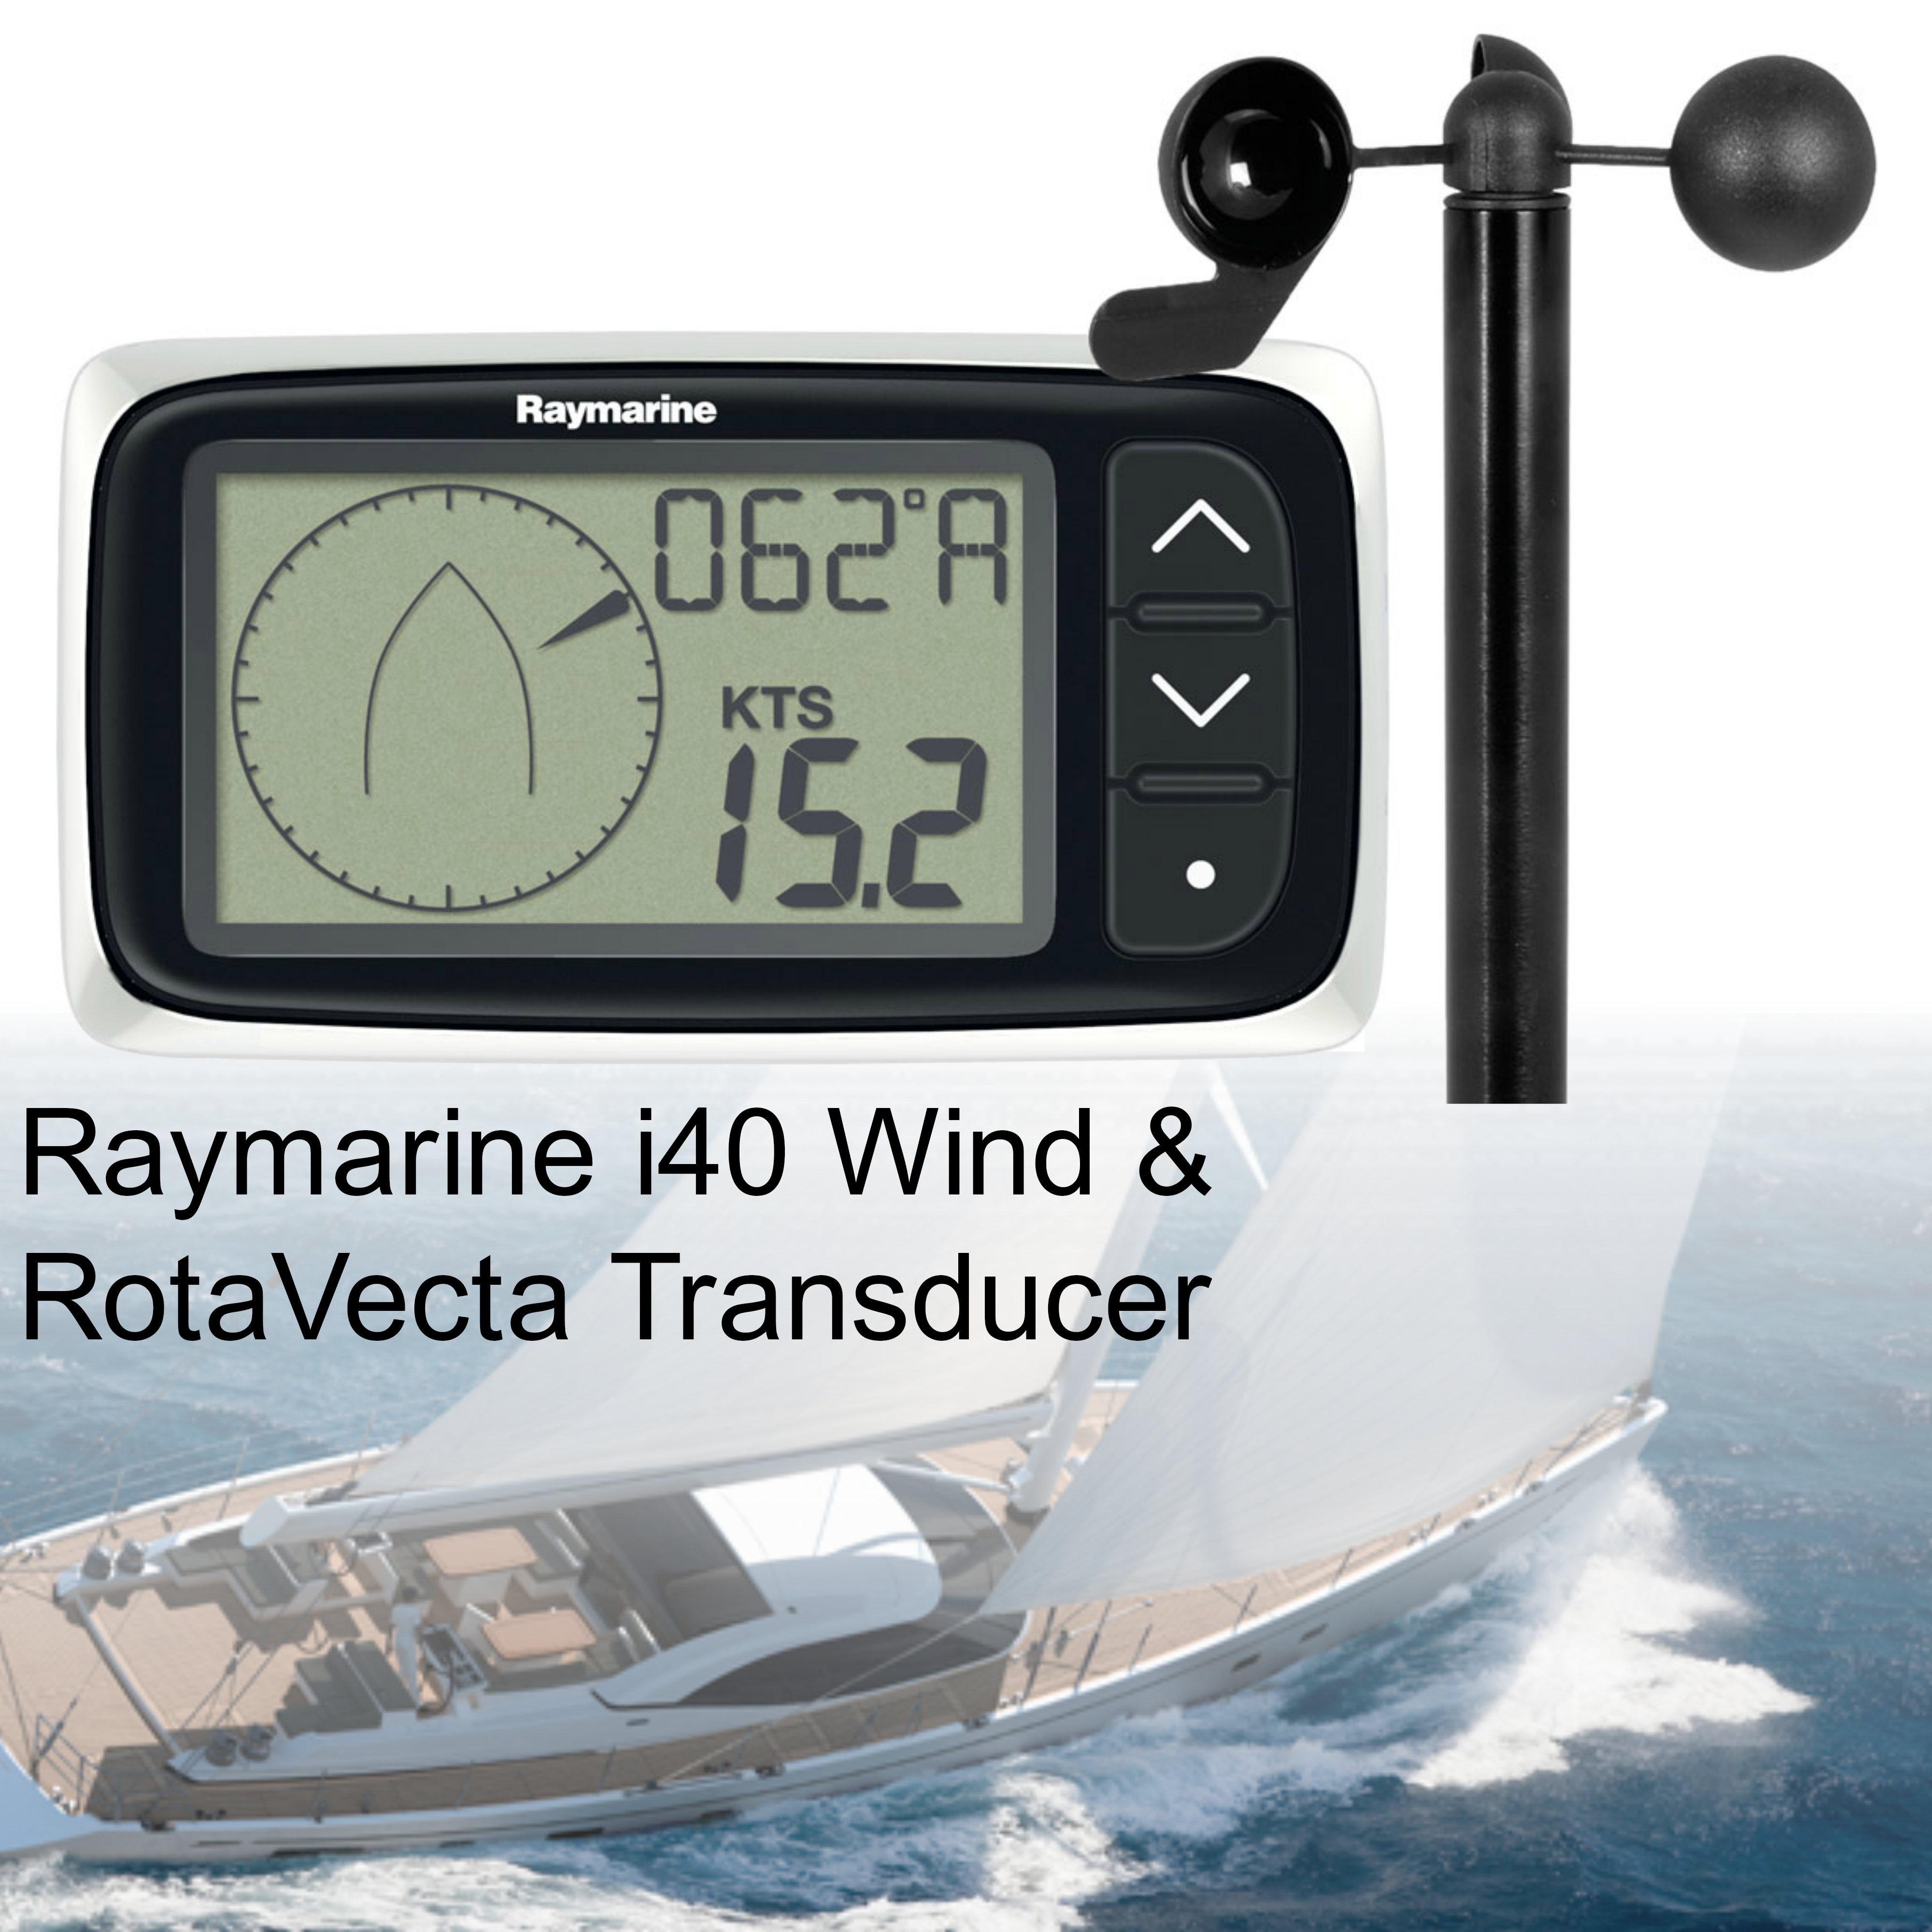 Raymarine E70144|i40 Wind Instument Display & Z195 RotaVecta Transducer Pack|For Yachts & Ribs